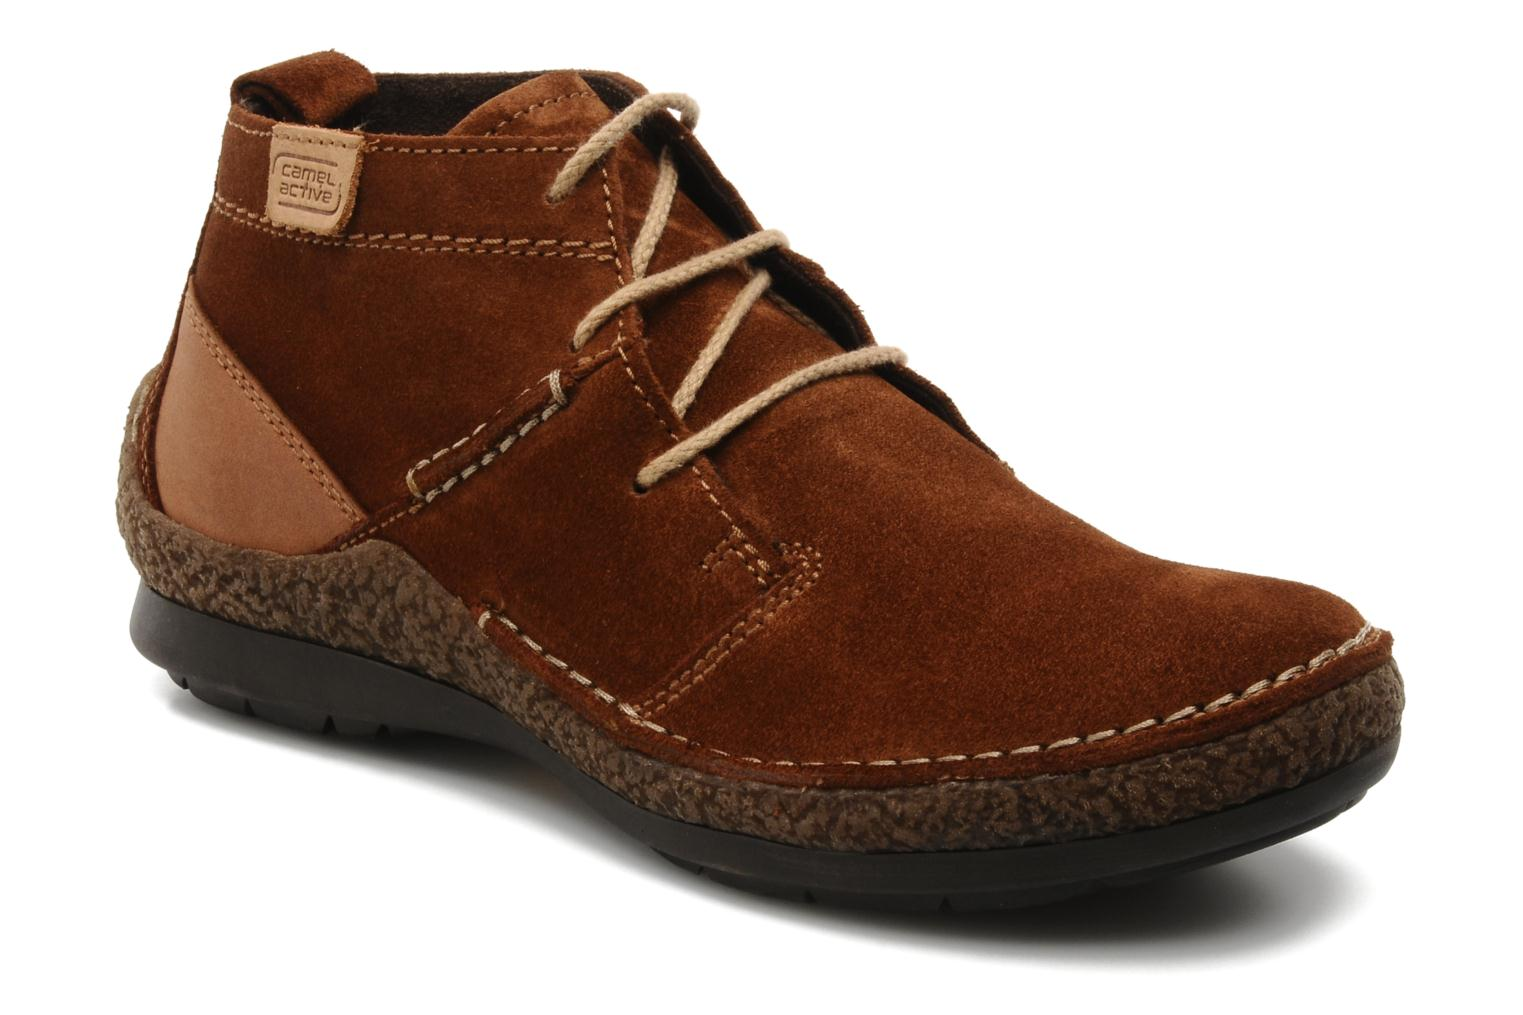 Chaussures Camel Active bleues Casual homme b7D6kGue